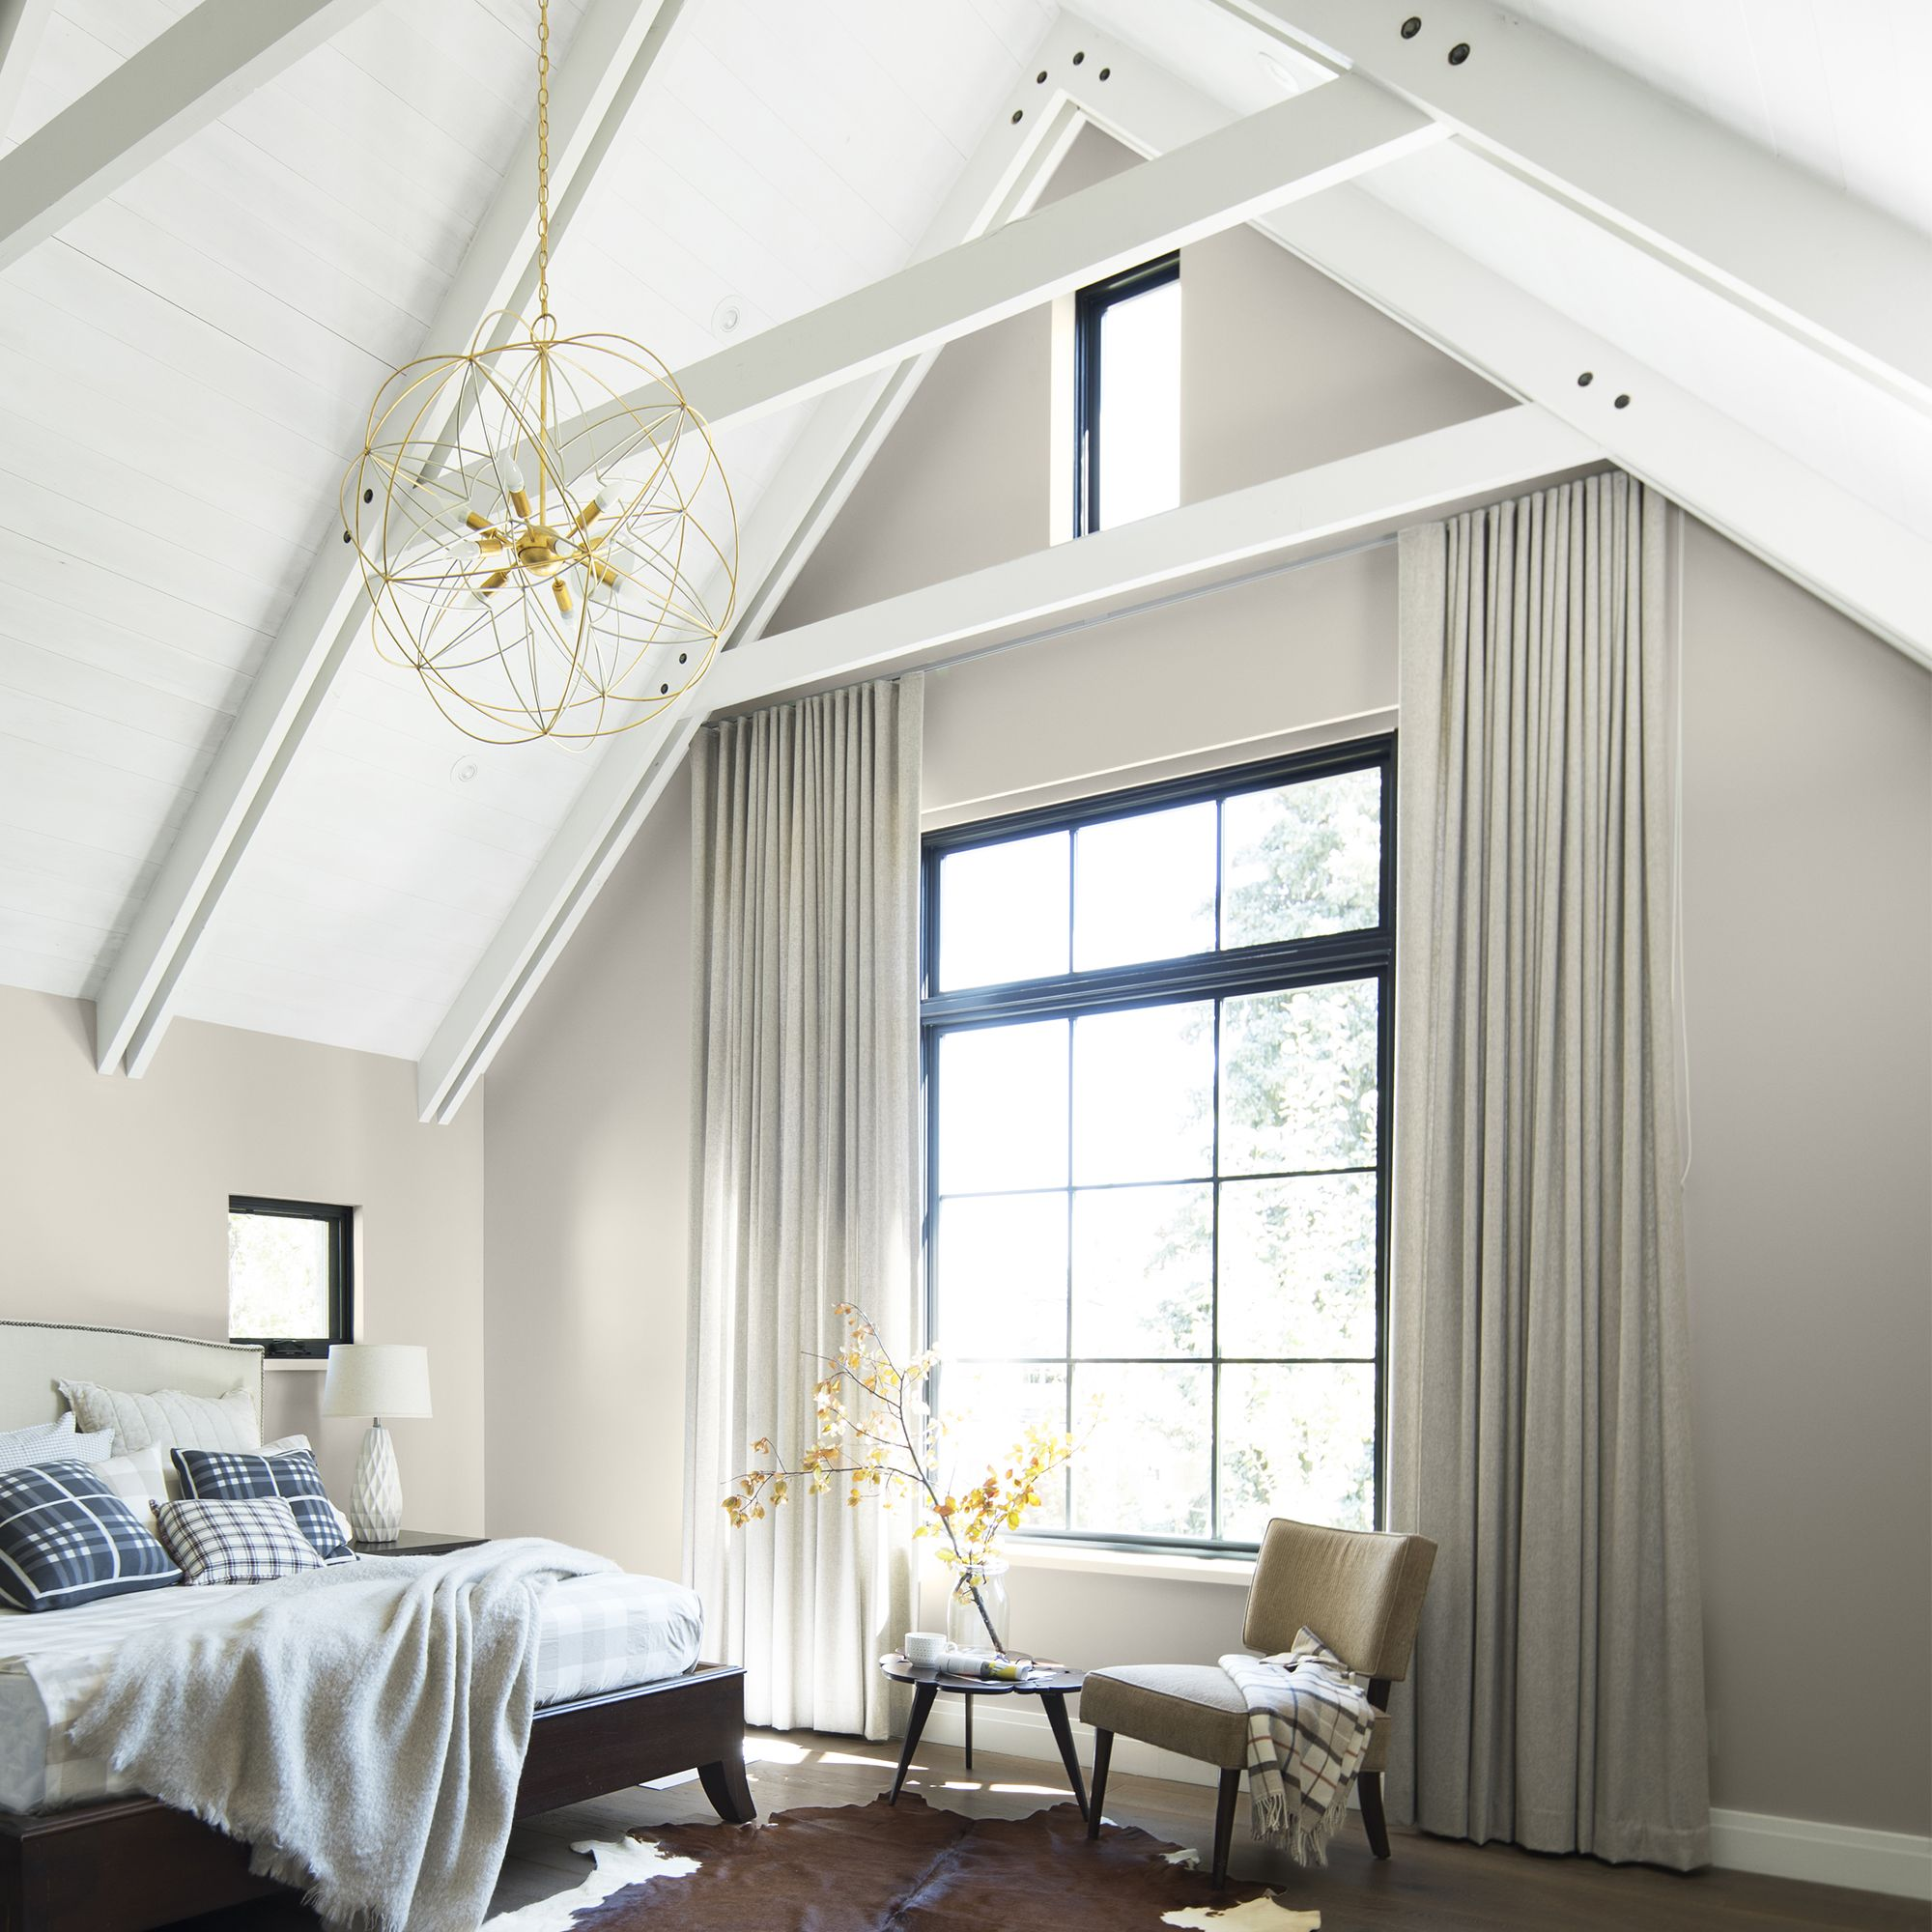 Bedroom with Vaulted Ceiling and Beams